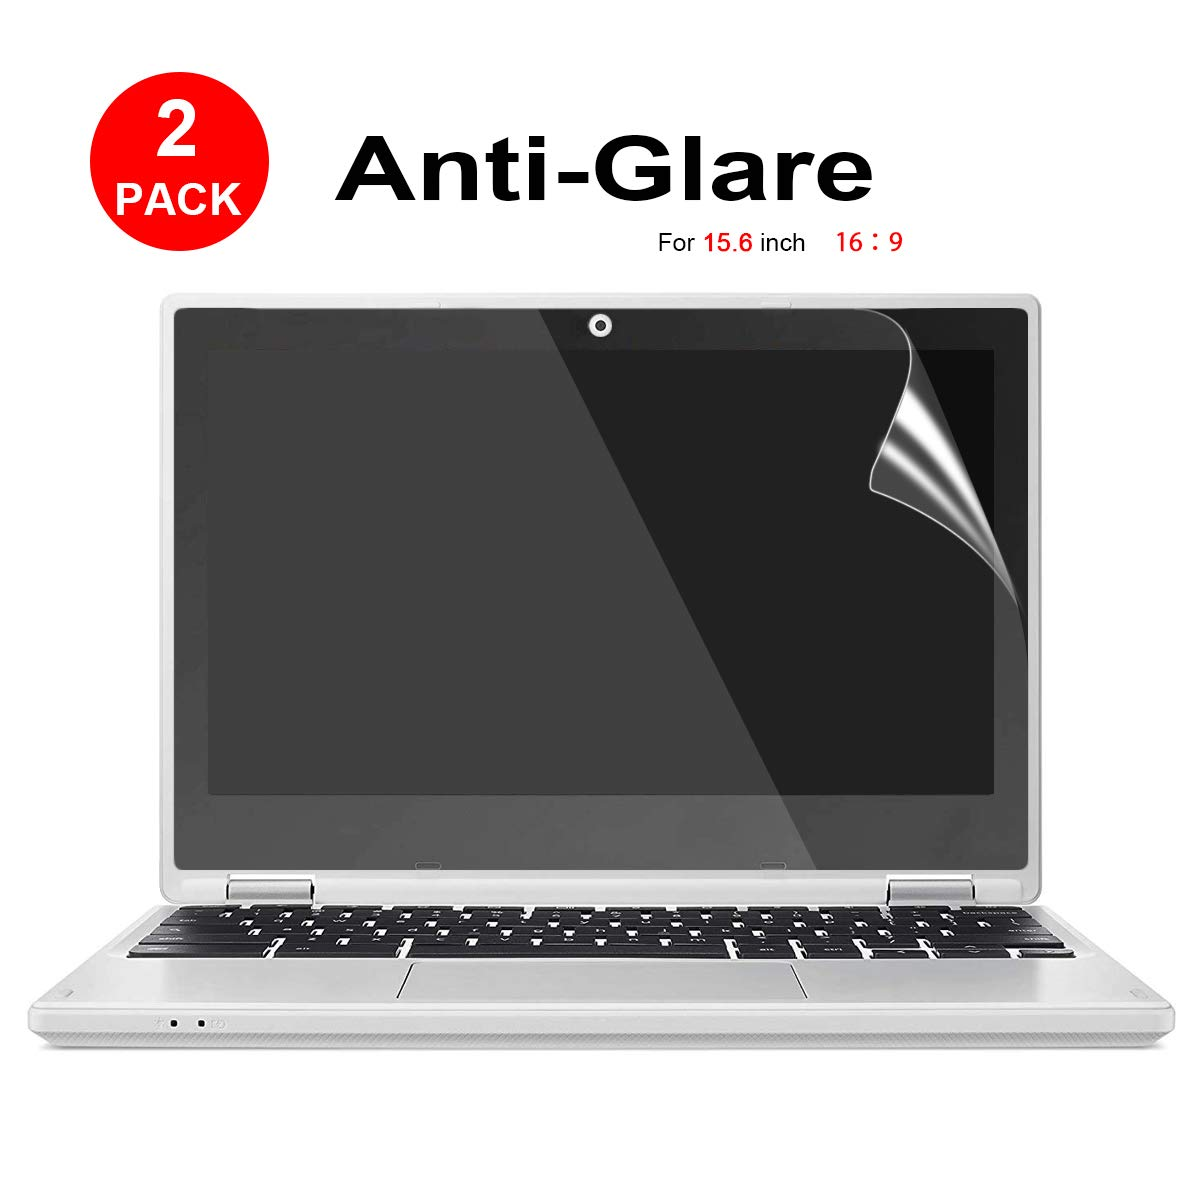 Protector De Pantalla Anti-glare 15.6 Display 16:9 (x2)